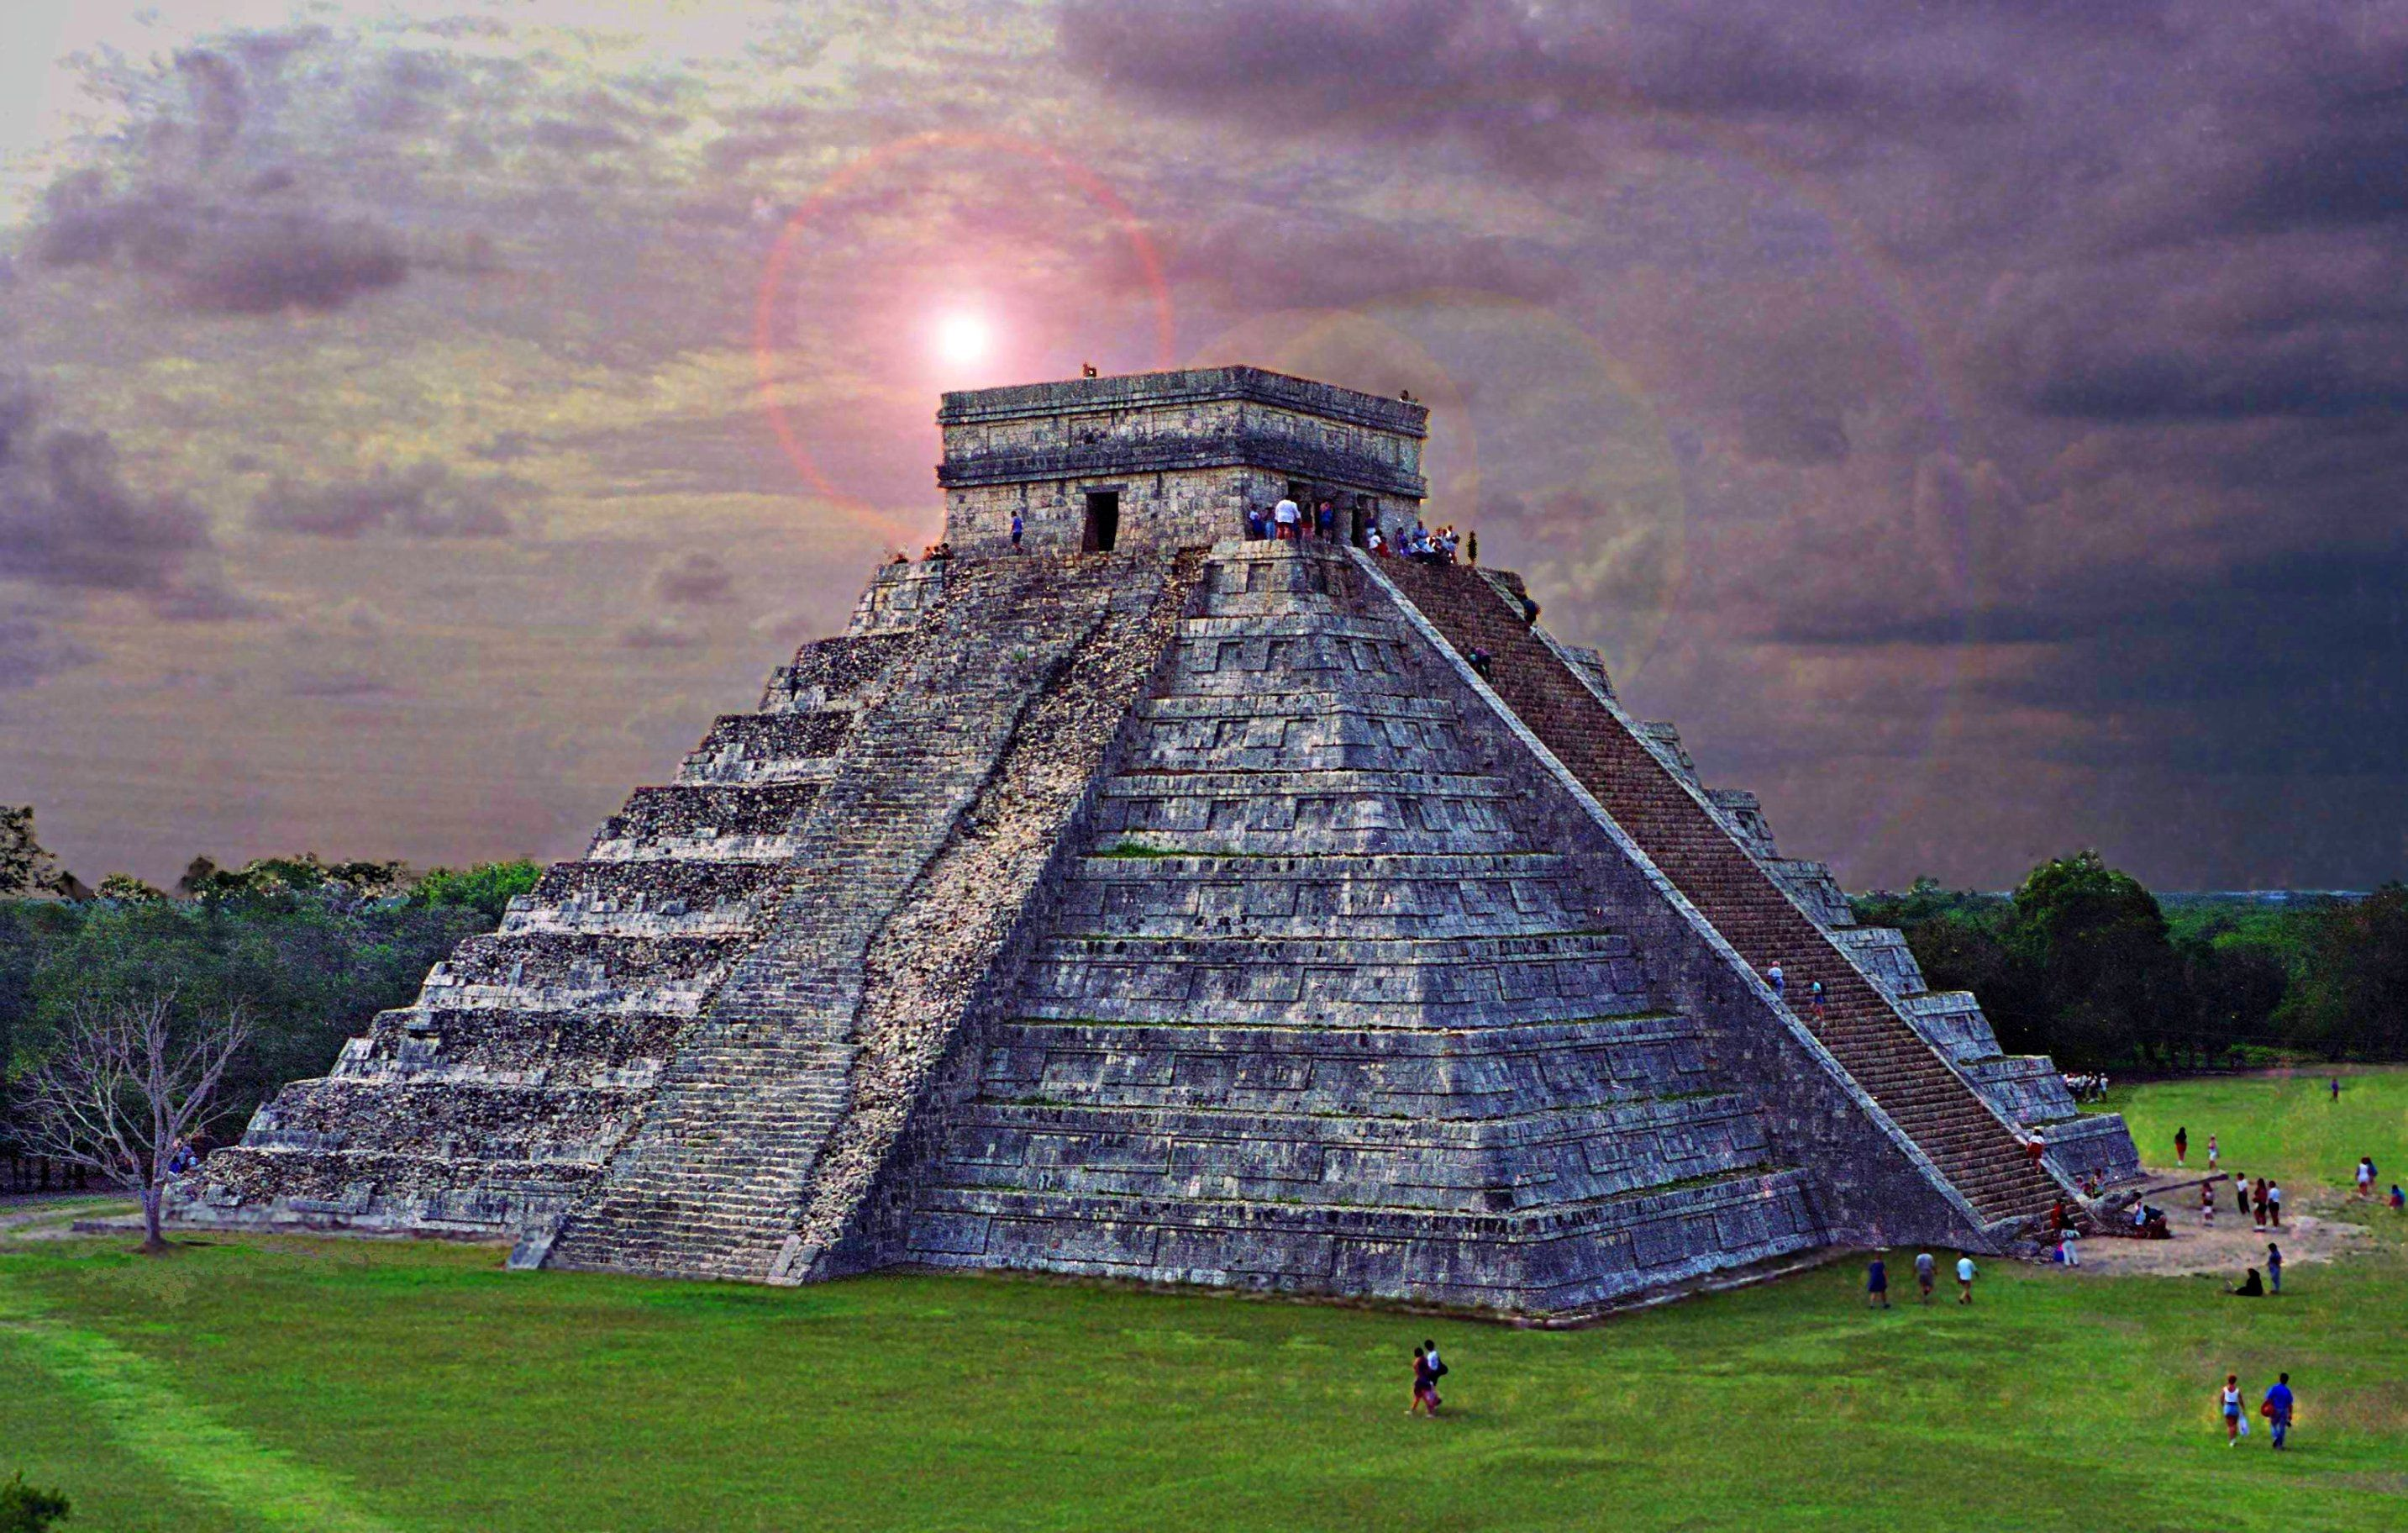 Ancient Mayan Daily Life besides Incas moreover Aztec Sacrifices moreover The Aztec Kingdom Rulers Of Pre Colombian America 1200 Ad 1500 Ad likewise Aztec Weapons Names. on human sacrifice aztecs maya